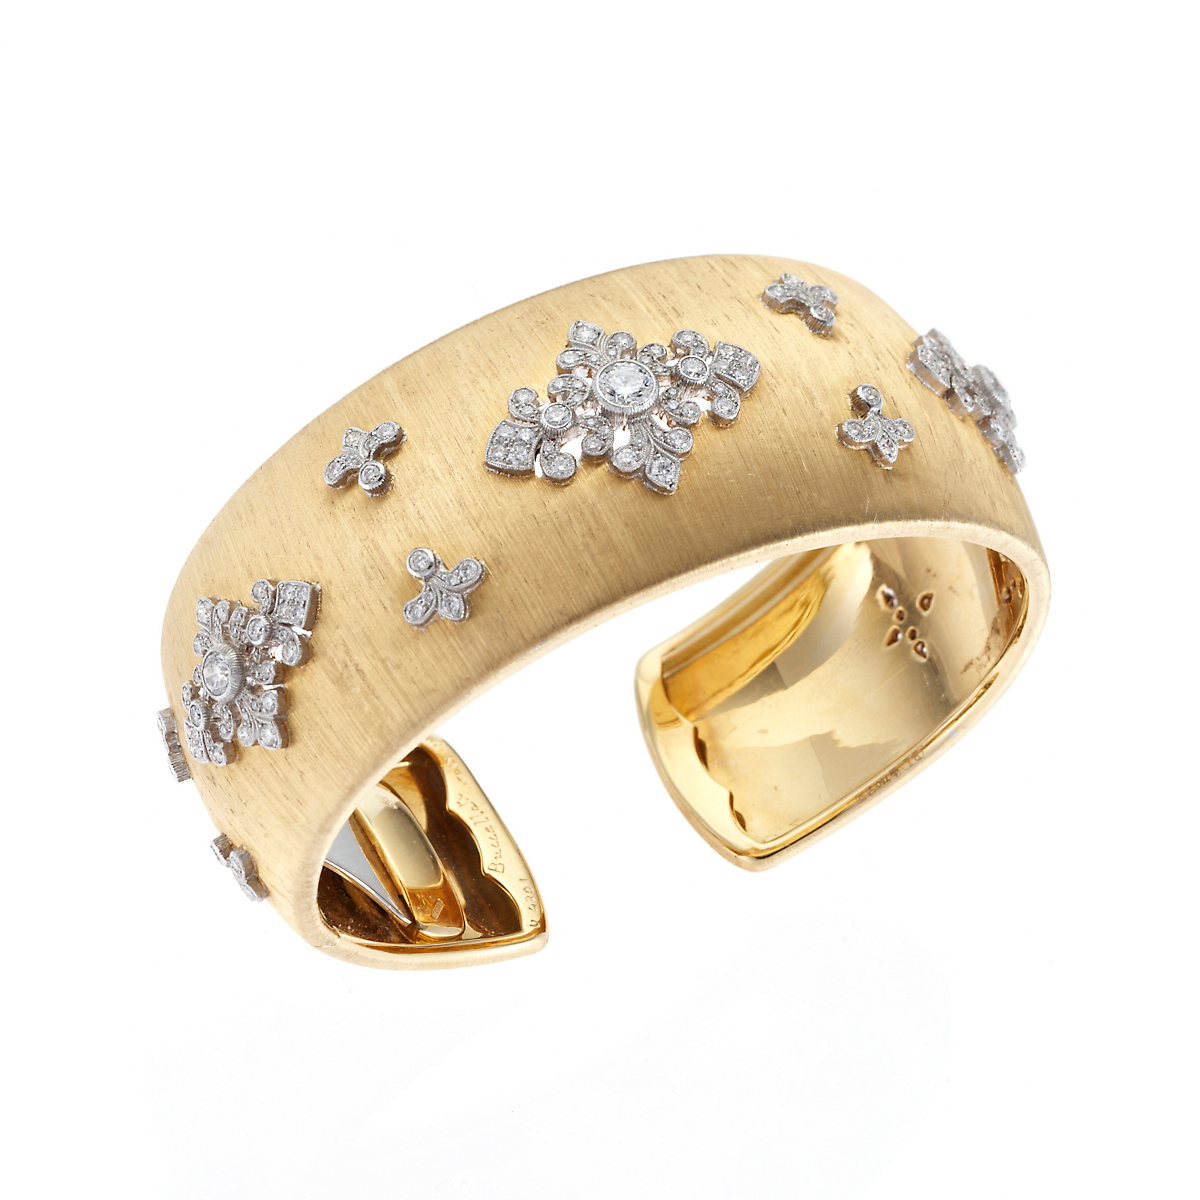 Buccellati Gold & Diamond Dream Cuff